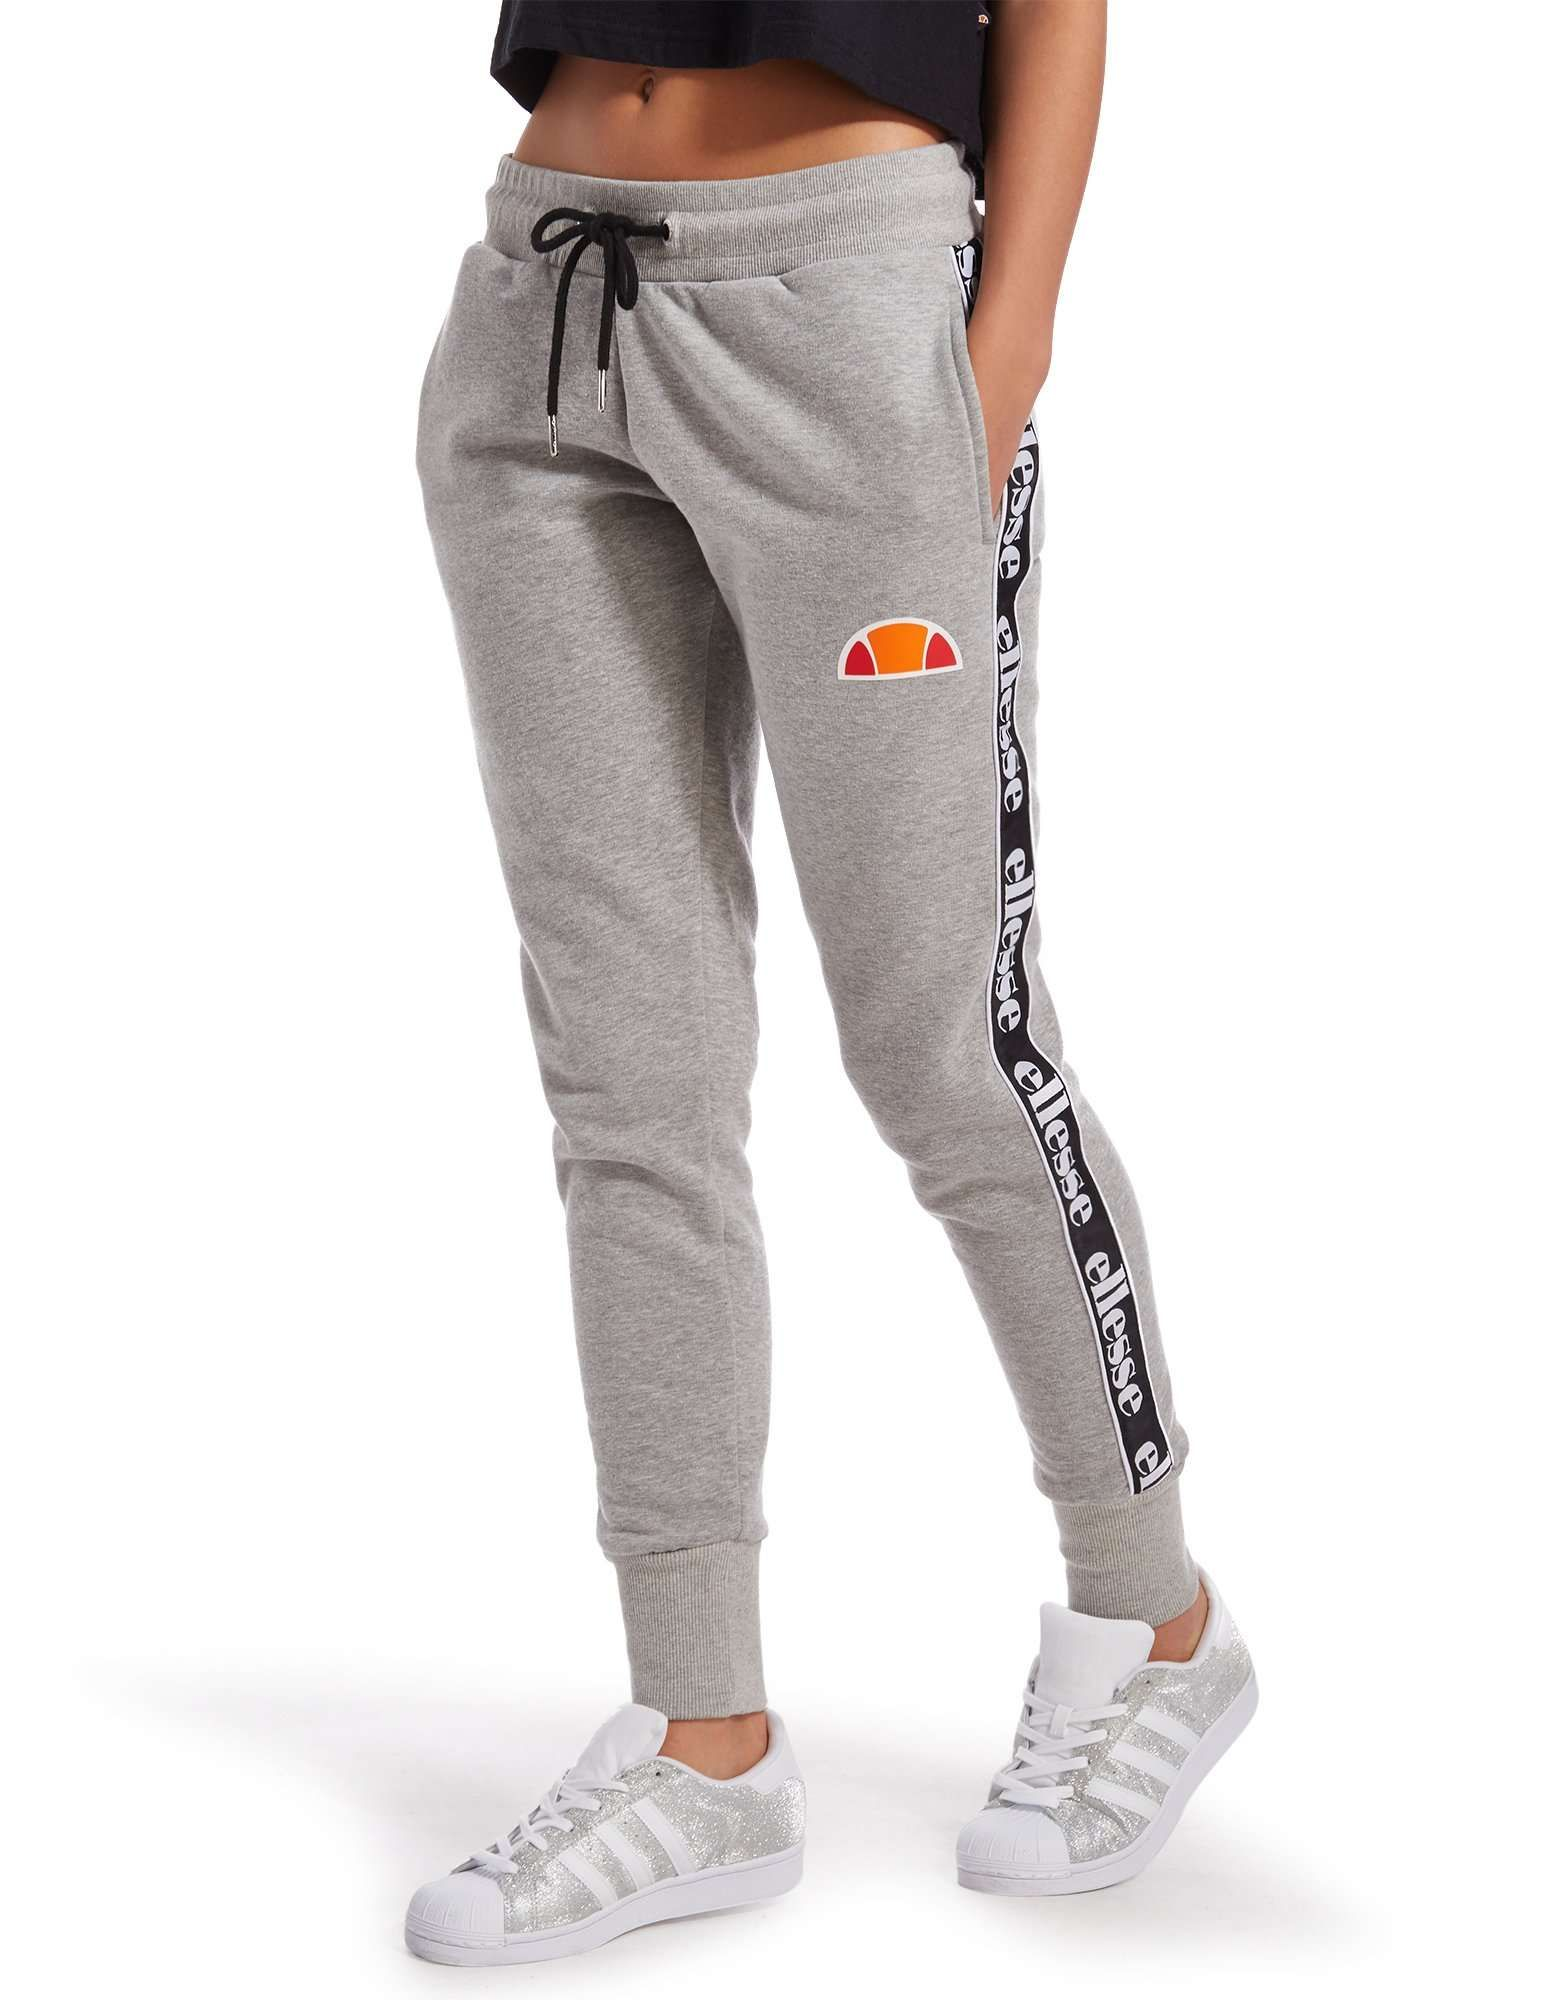 Ellesse Tape Fleece Pants - Shop online for Ellesse Tape Fleece Pants with  JD Sports,